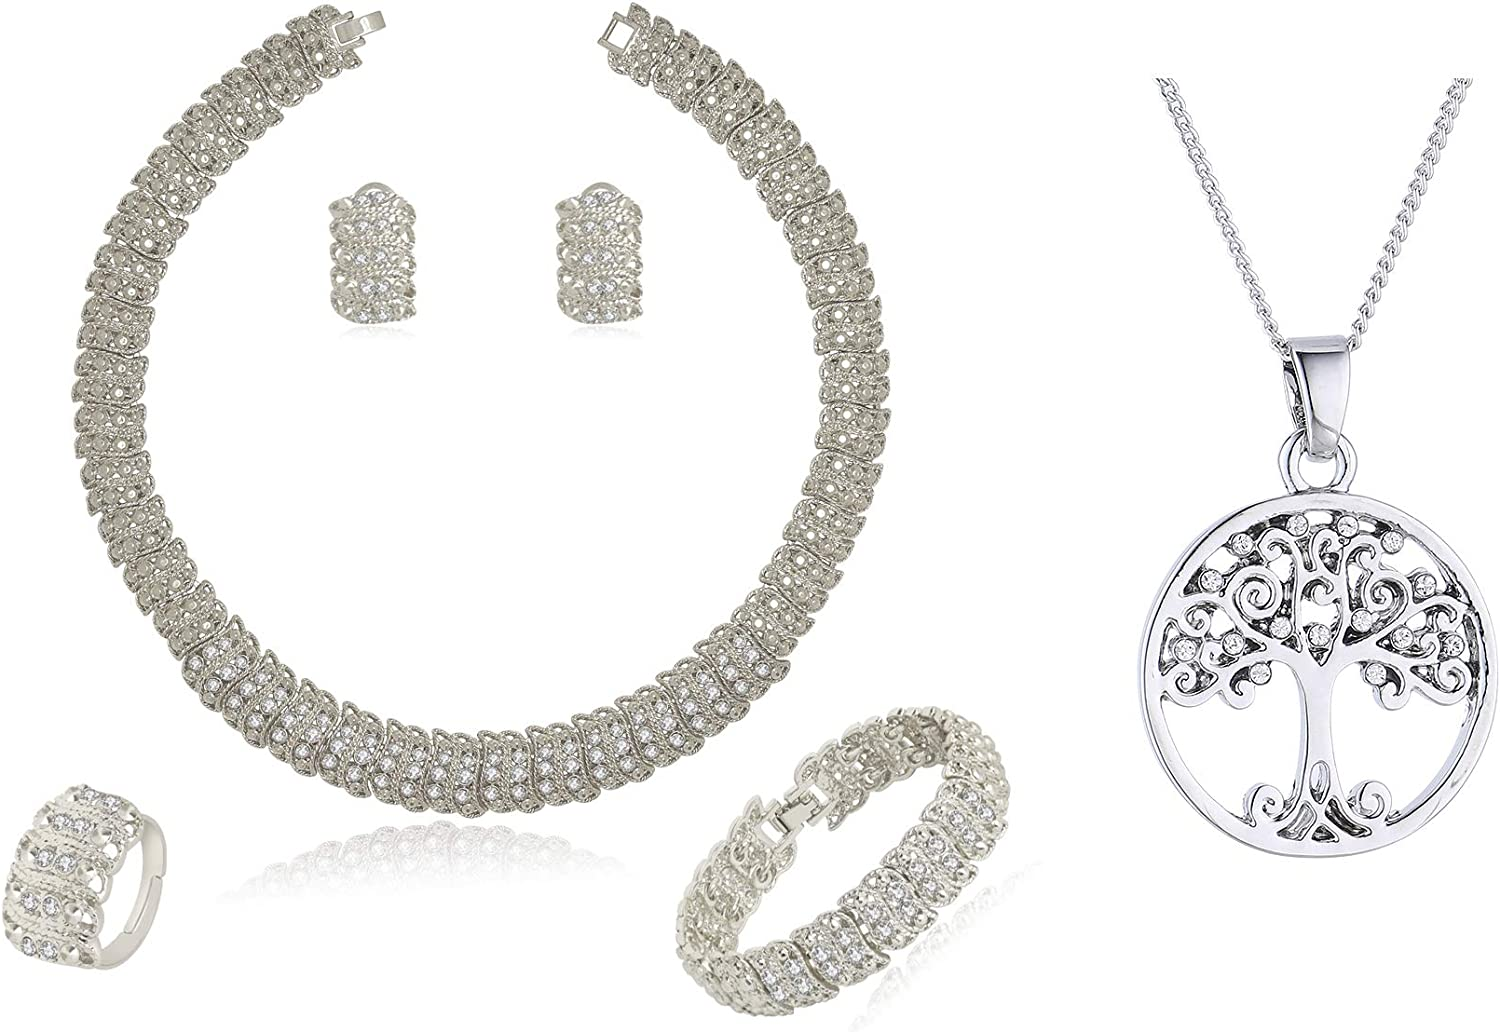 Silver Plated wide chain crystal jewelry set and Swarovski crystal family tree necklace